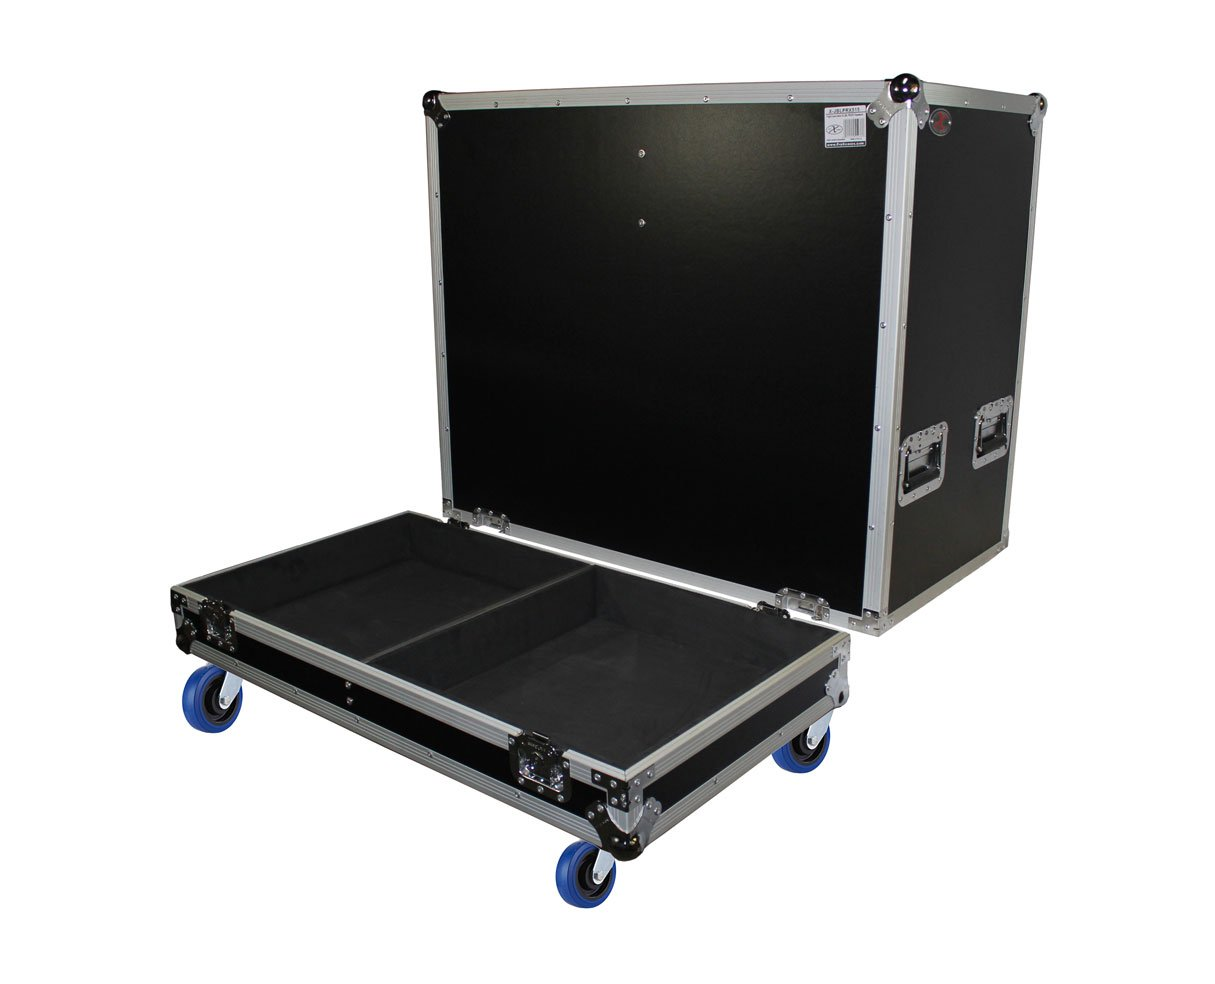 ProX X-JBL-VRX932LAP Universal JBL ATA Flight Case for 2x VRX932LAP Speaker